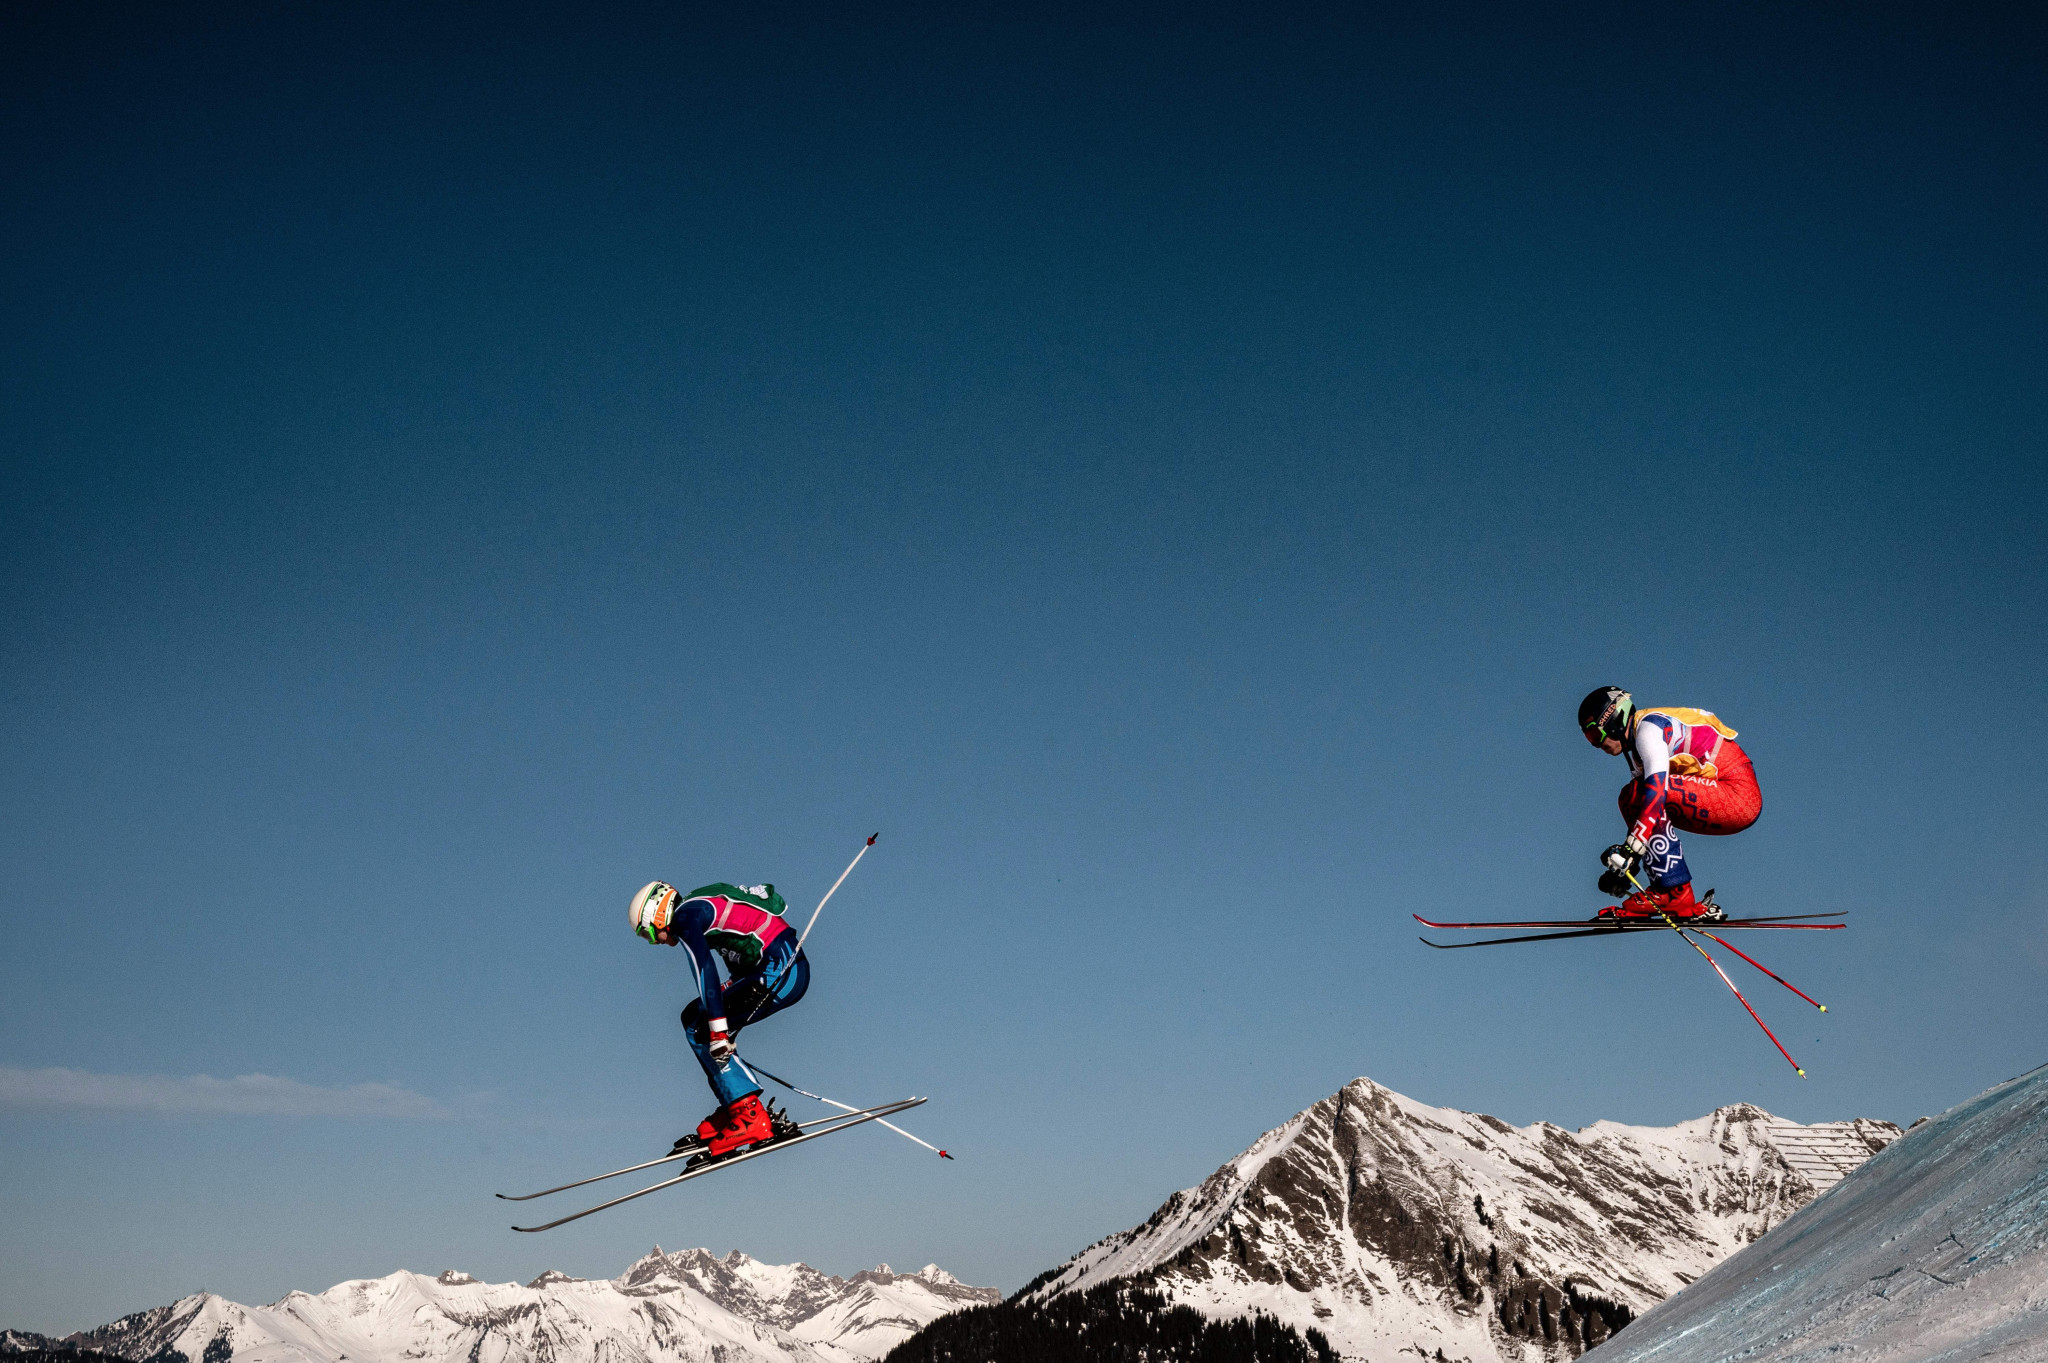 Skiers and snowboarders joined forces for a team cross race ©Getty Images